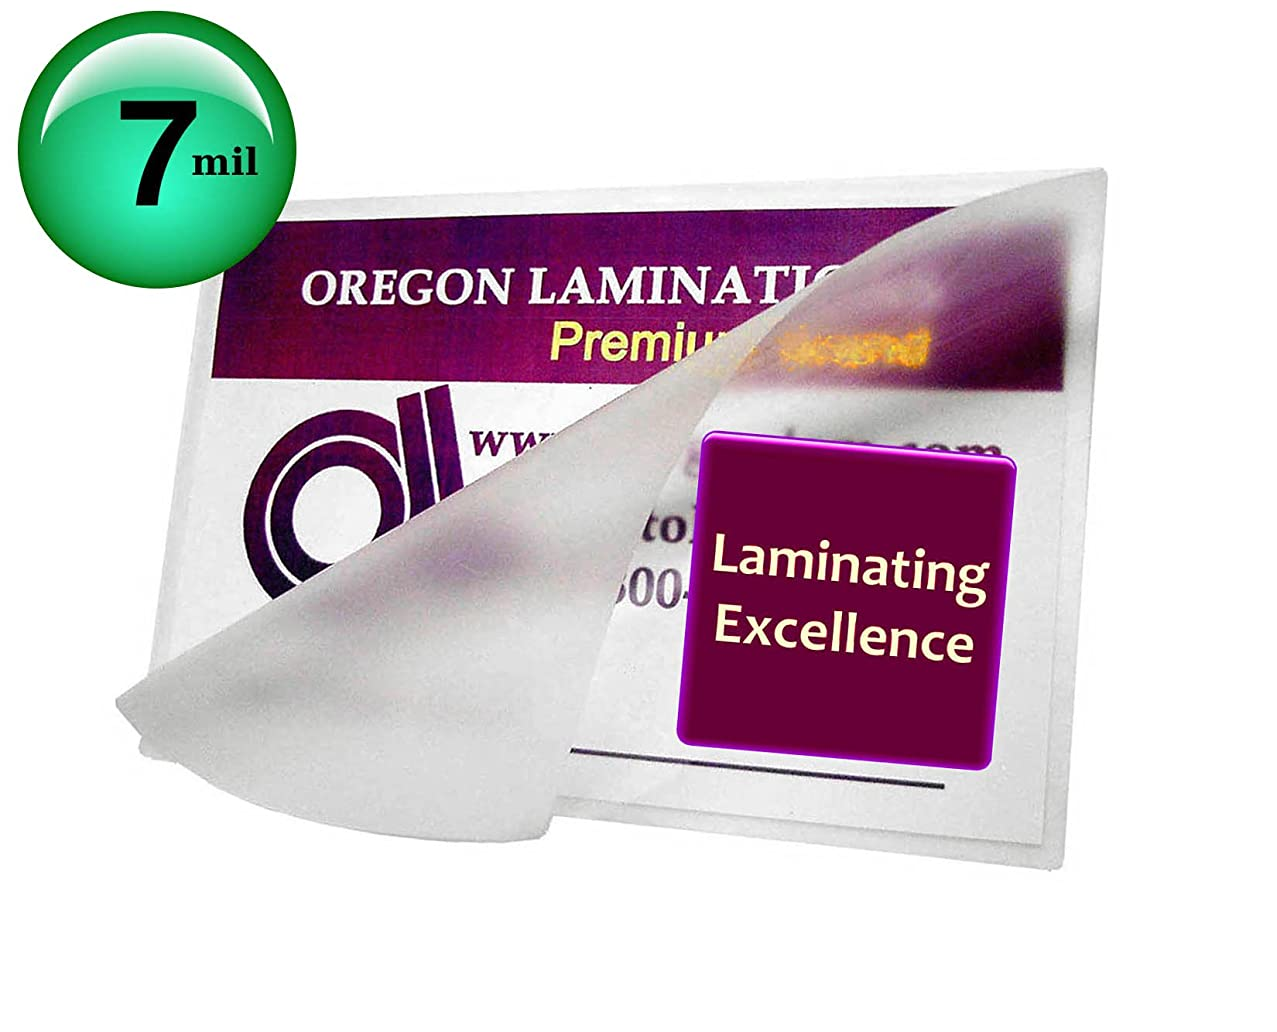 Qty 500 7 Mil Jumbo Card Laminating Pouches 2-15/16 x 4-1/8 Hot Laminator Sleeves